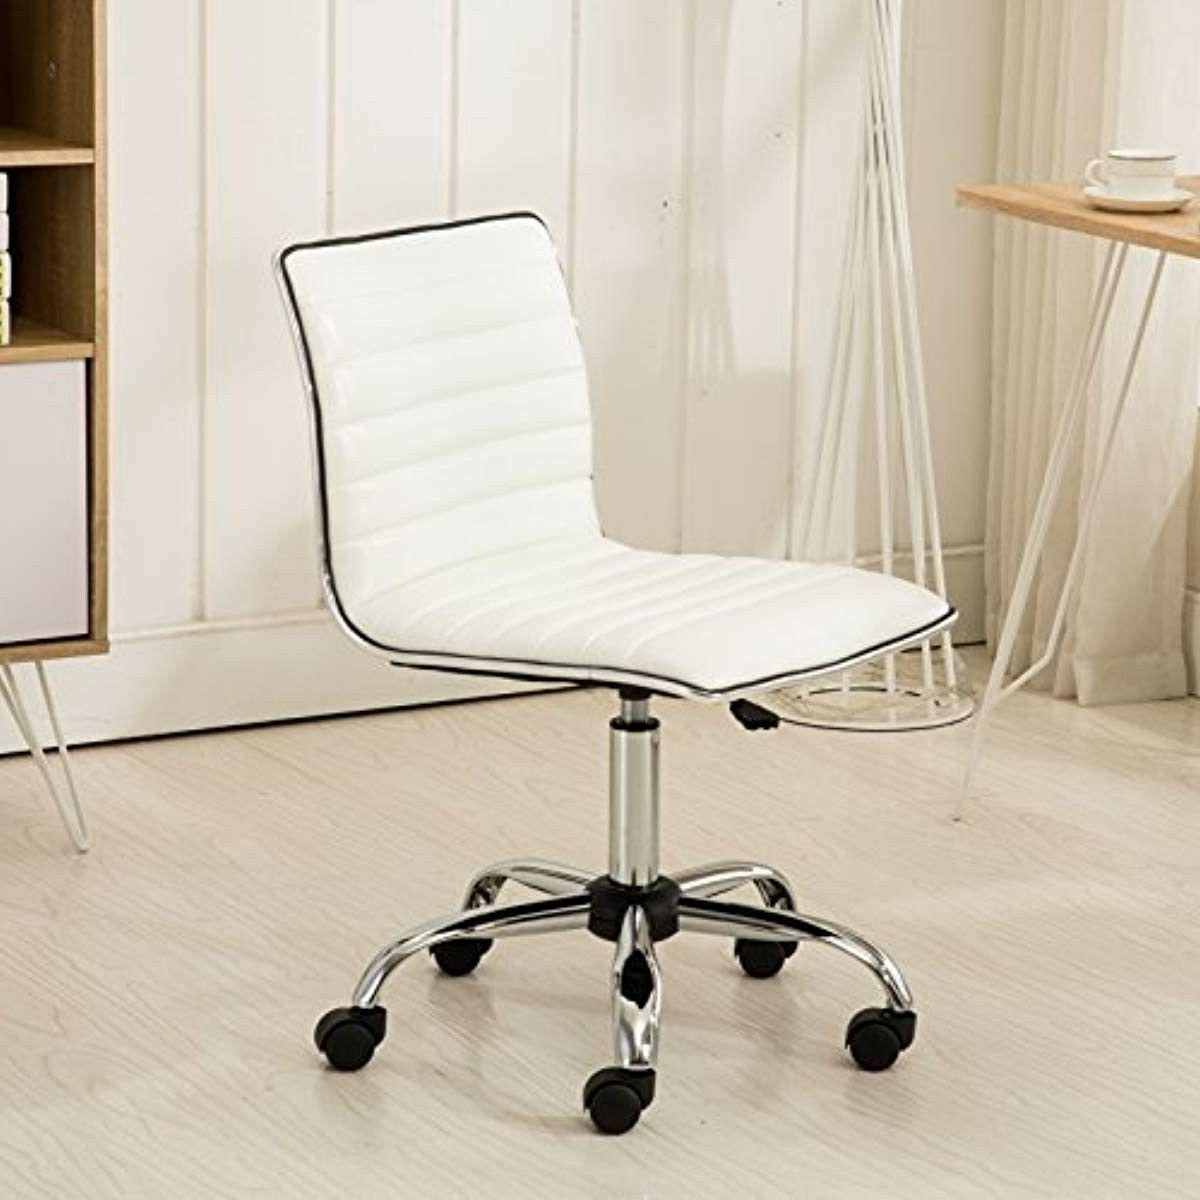 High Back Leather Office Chair Ergonomic Computer Desk Seat White